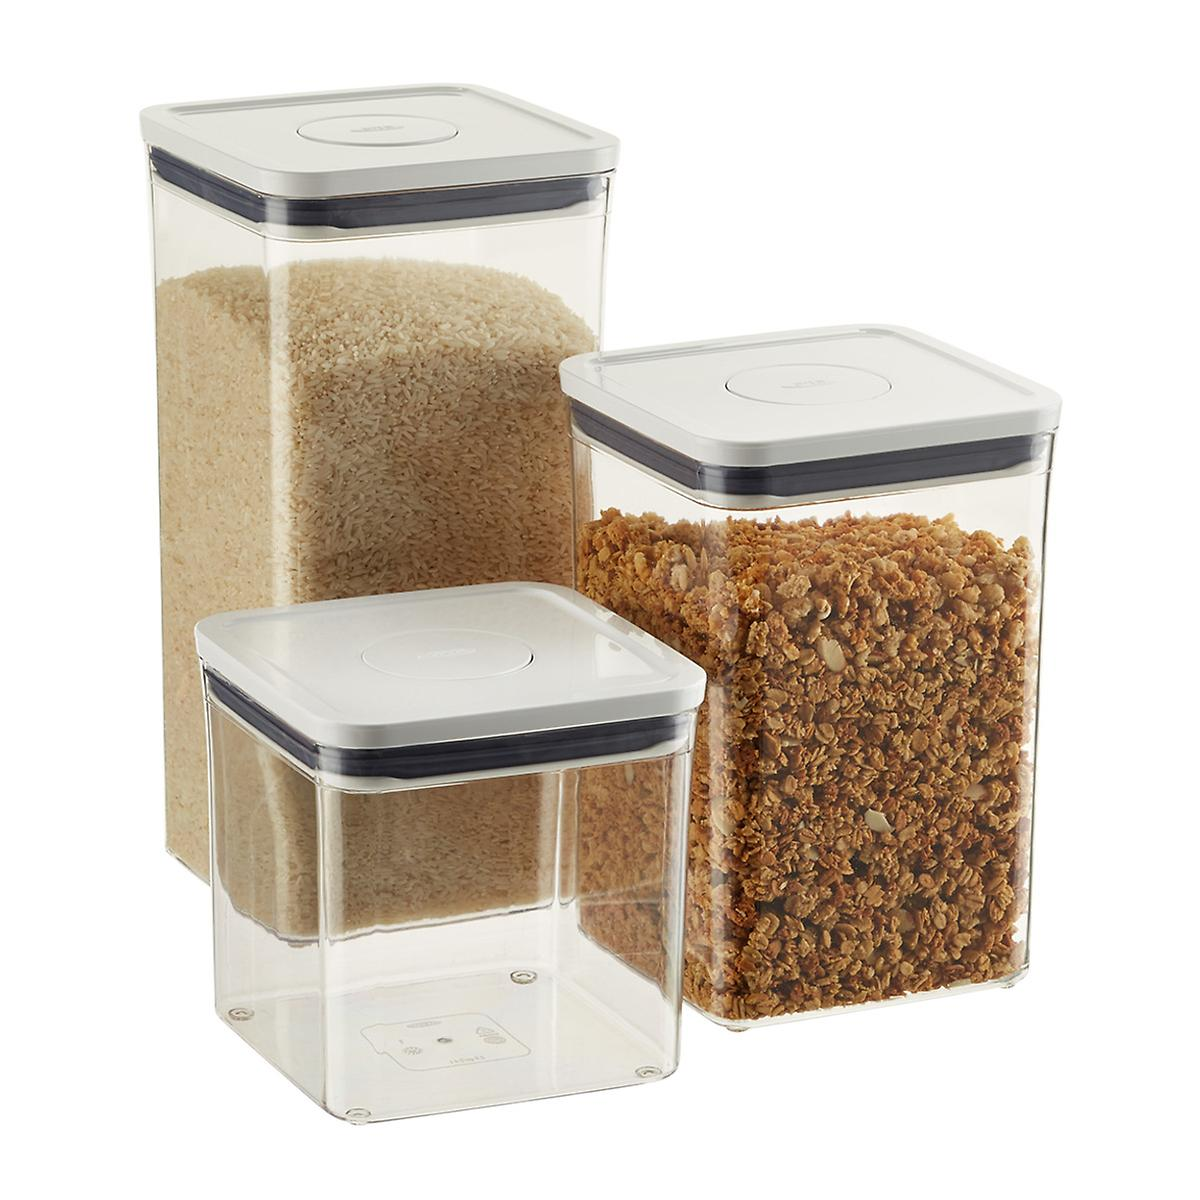 OXO POP Containers